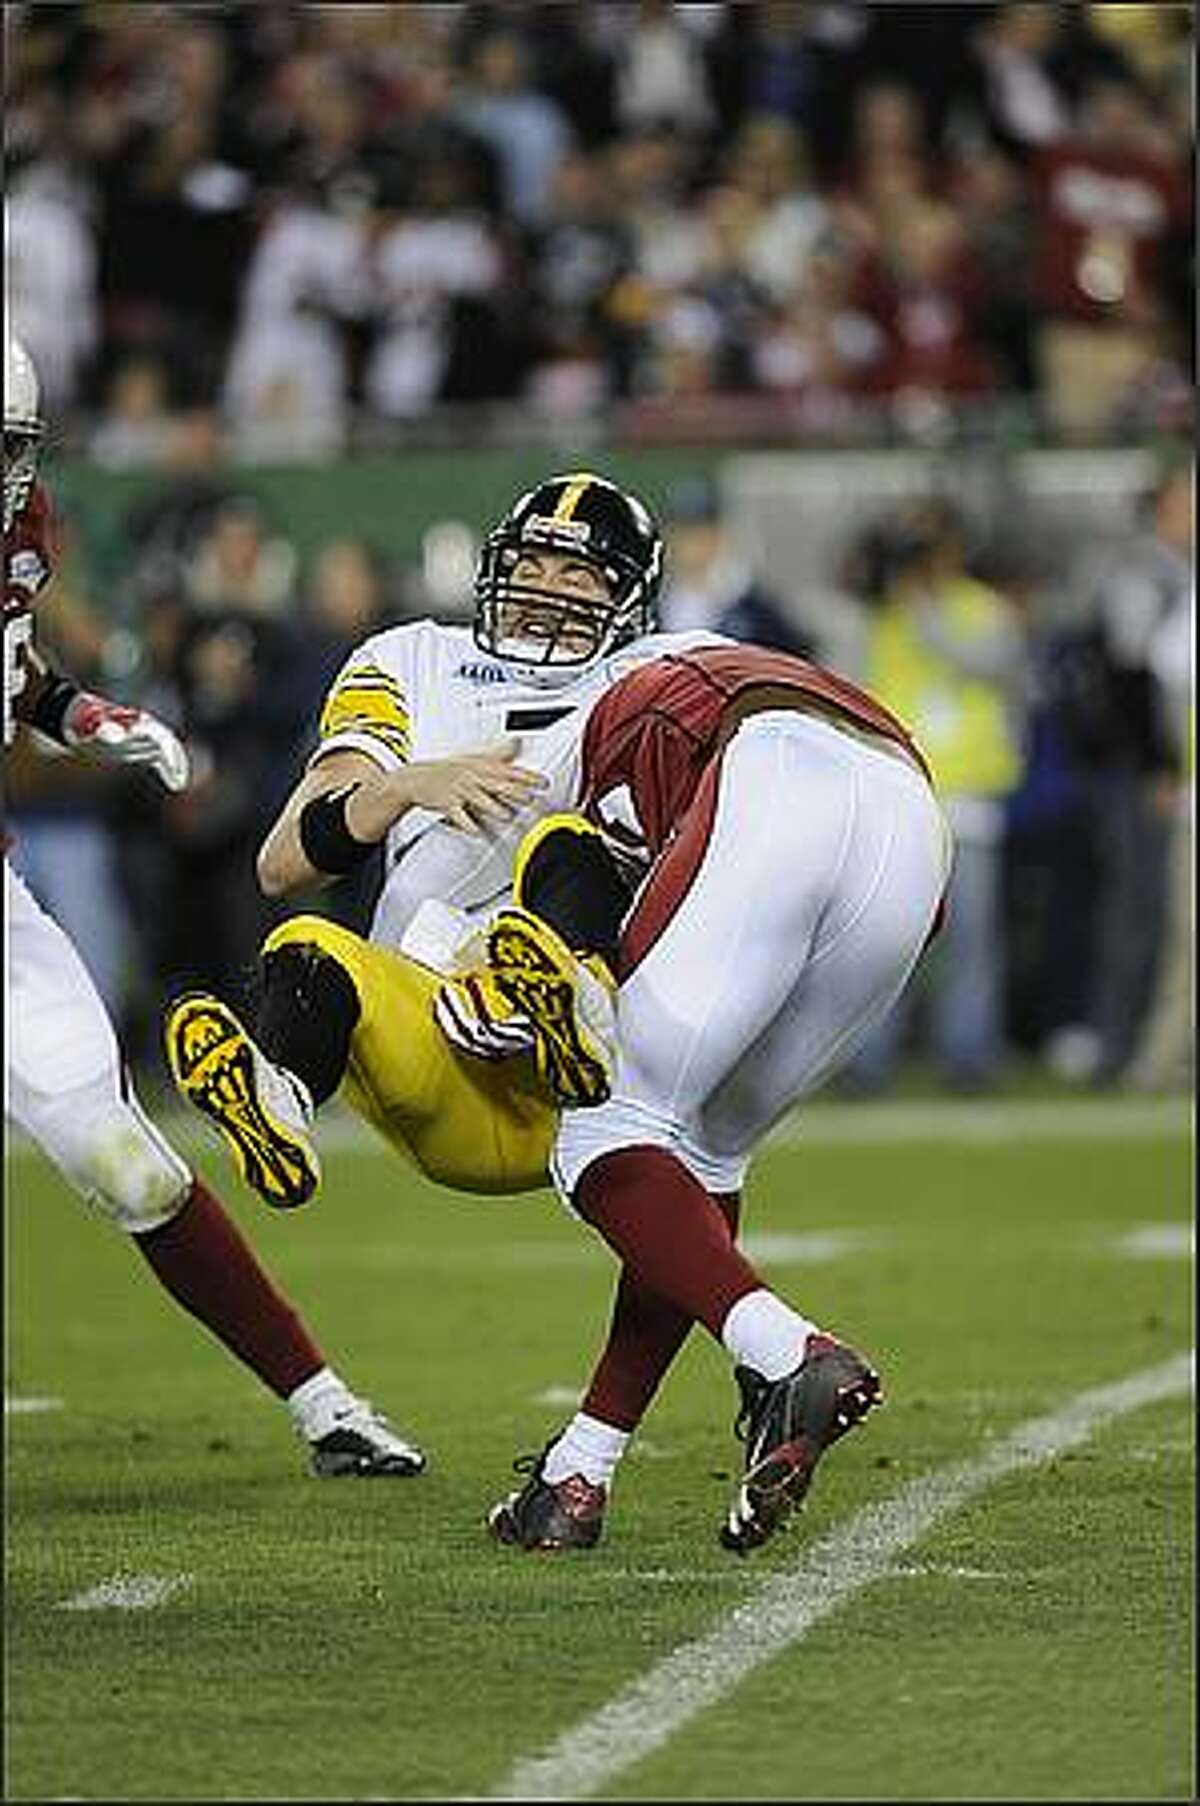 Quarterback Ben Roethisberger of the Pittsburgh Steelers is sacked by Bertrand Berry of the Arizona Cardinals.( TIMOTHY A. CLARY/AFP/Getty Images)